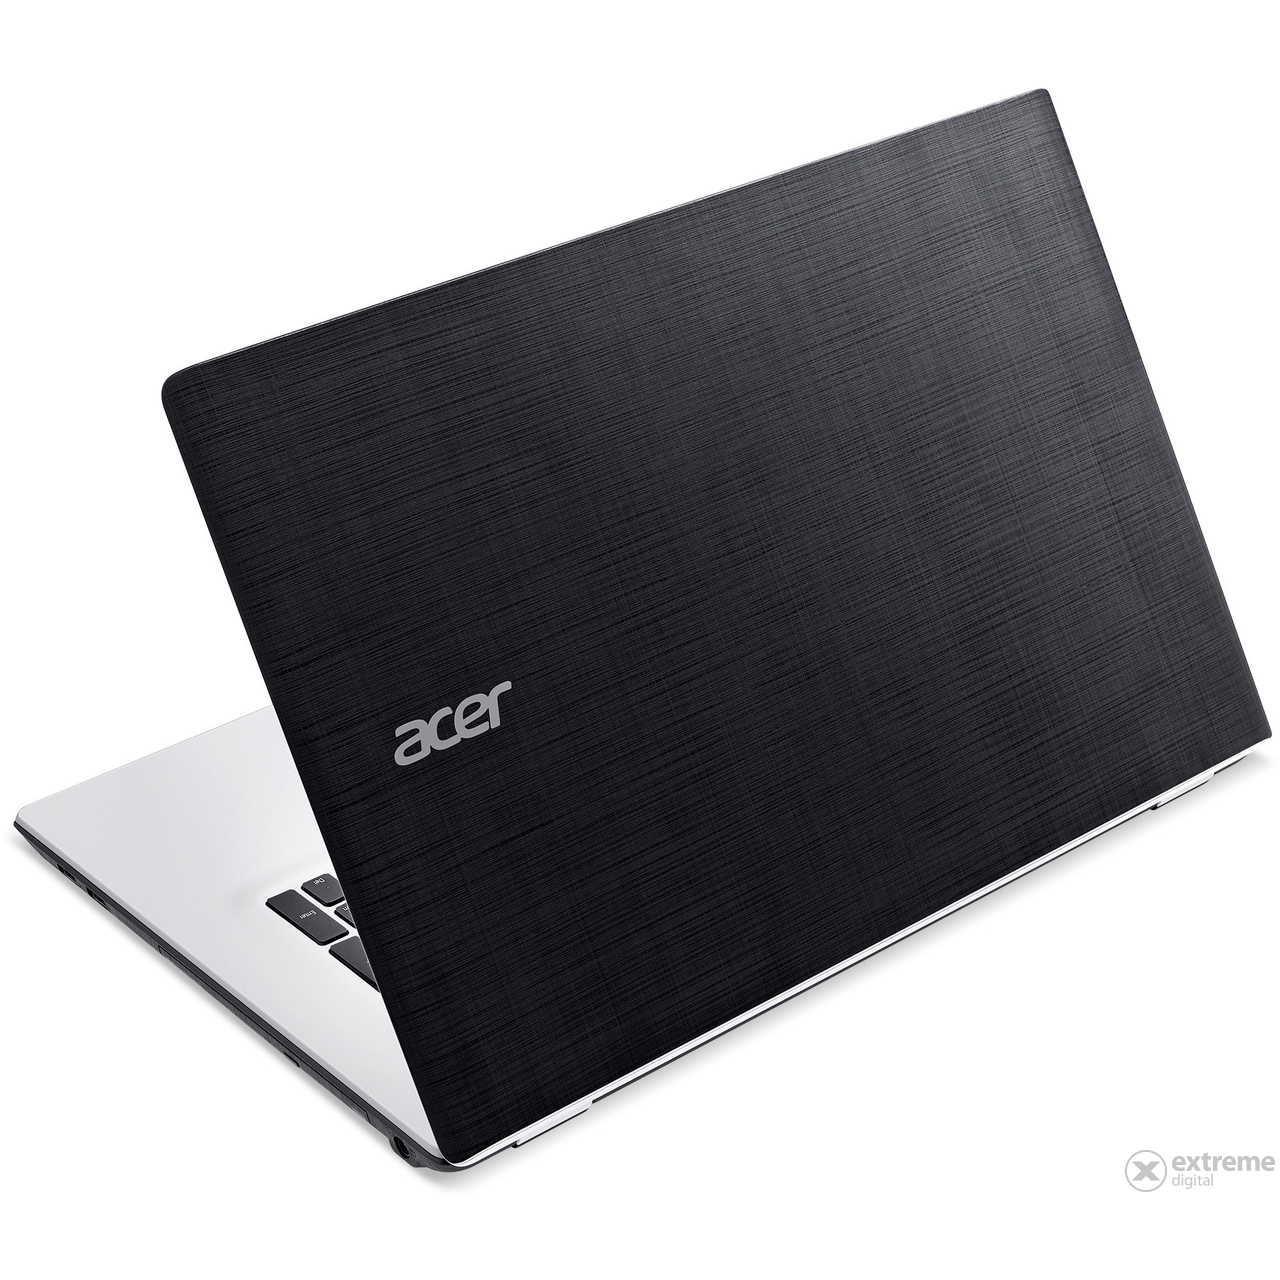 acer-aspire-e5-573-nx-mw2eu-021-notebook-windows-10-fekete-feher-microsoft-office-365-personal_65fde2fc.jpg